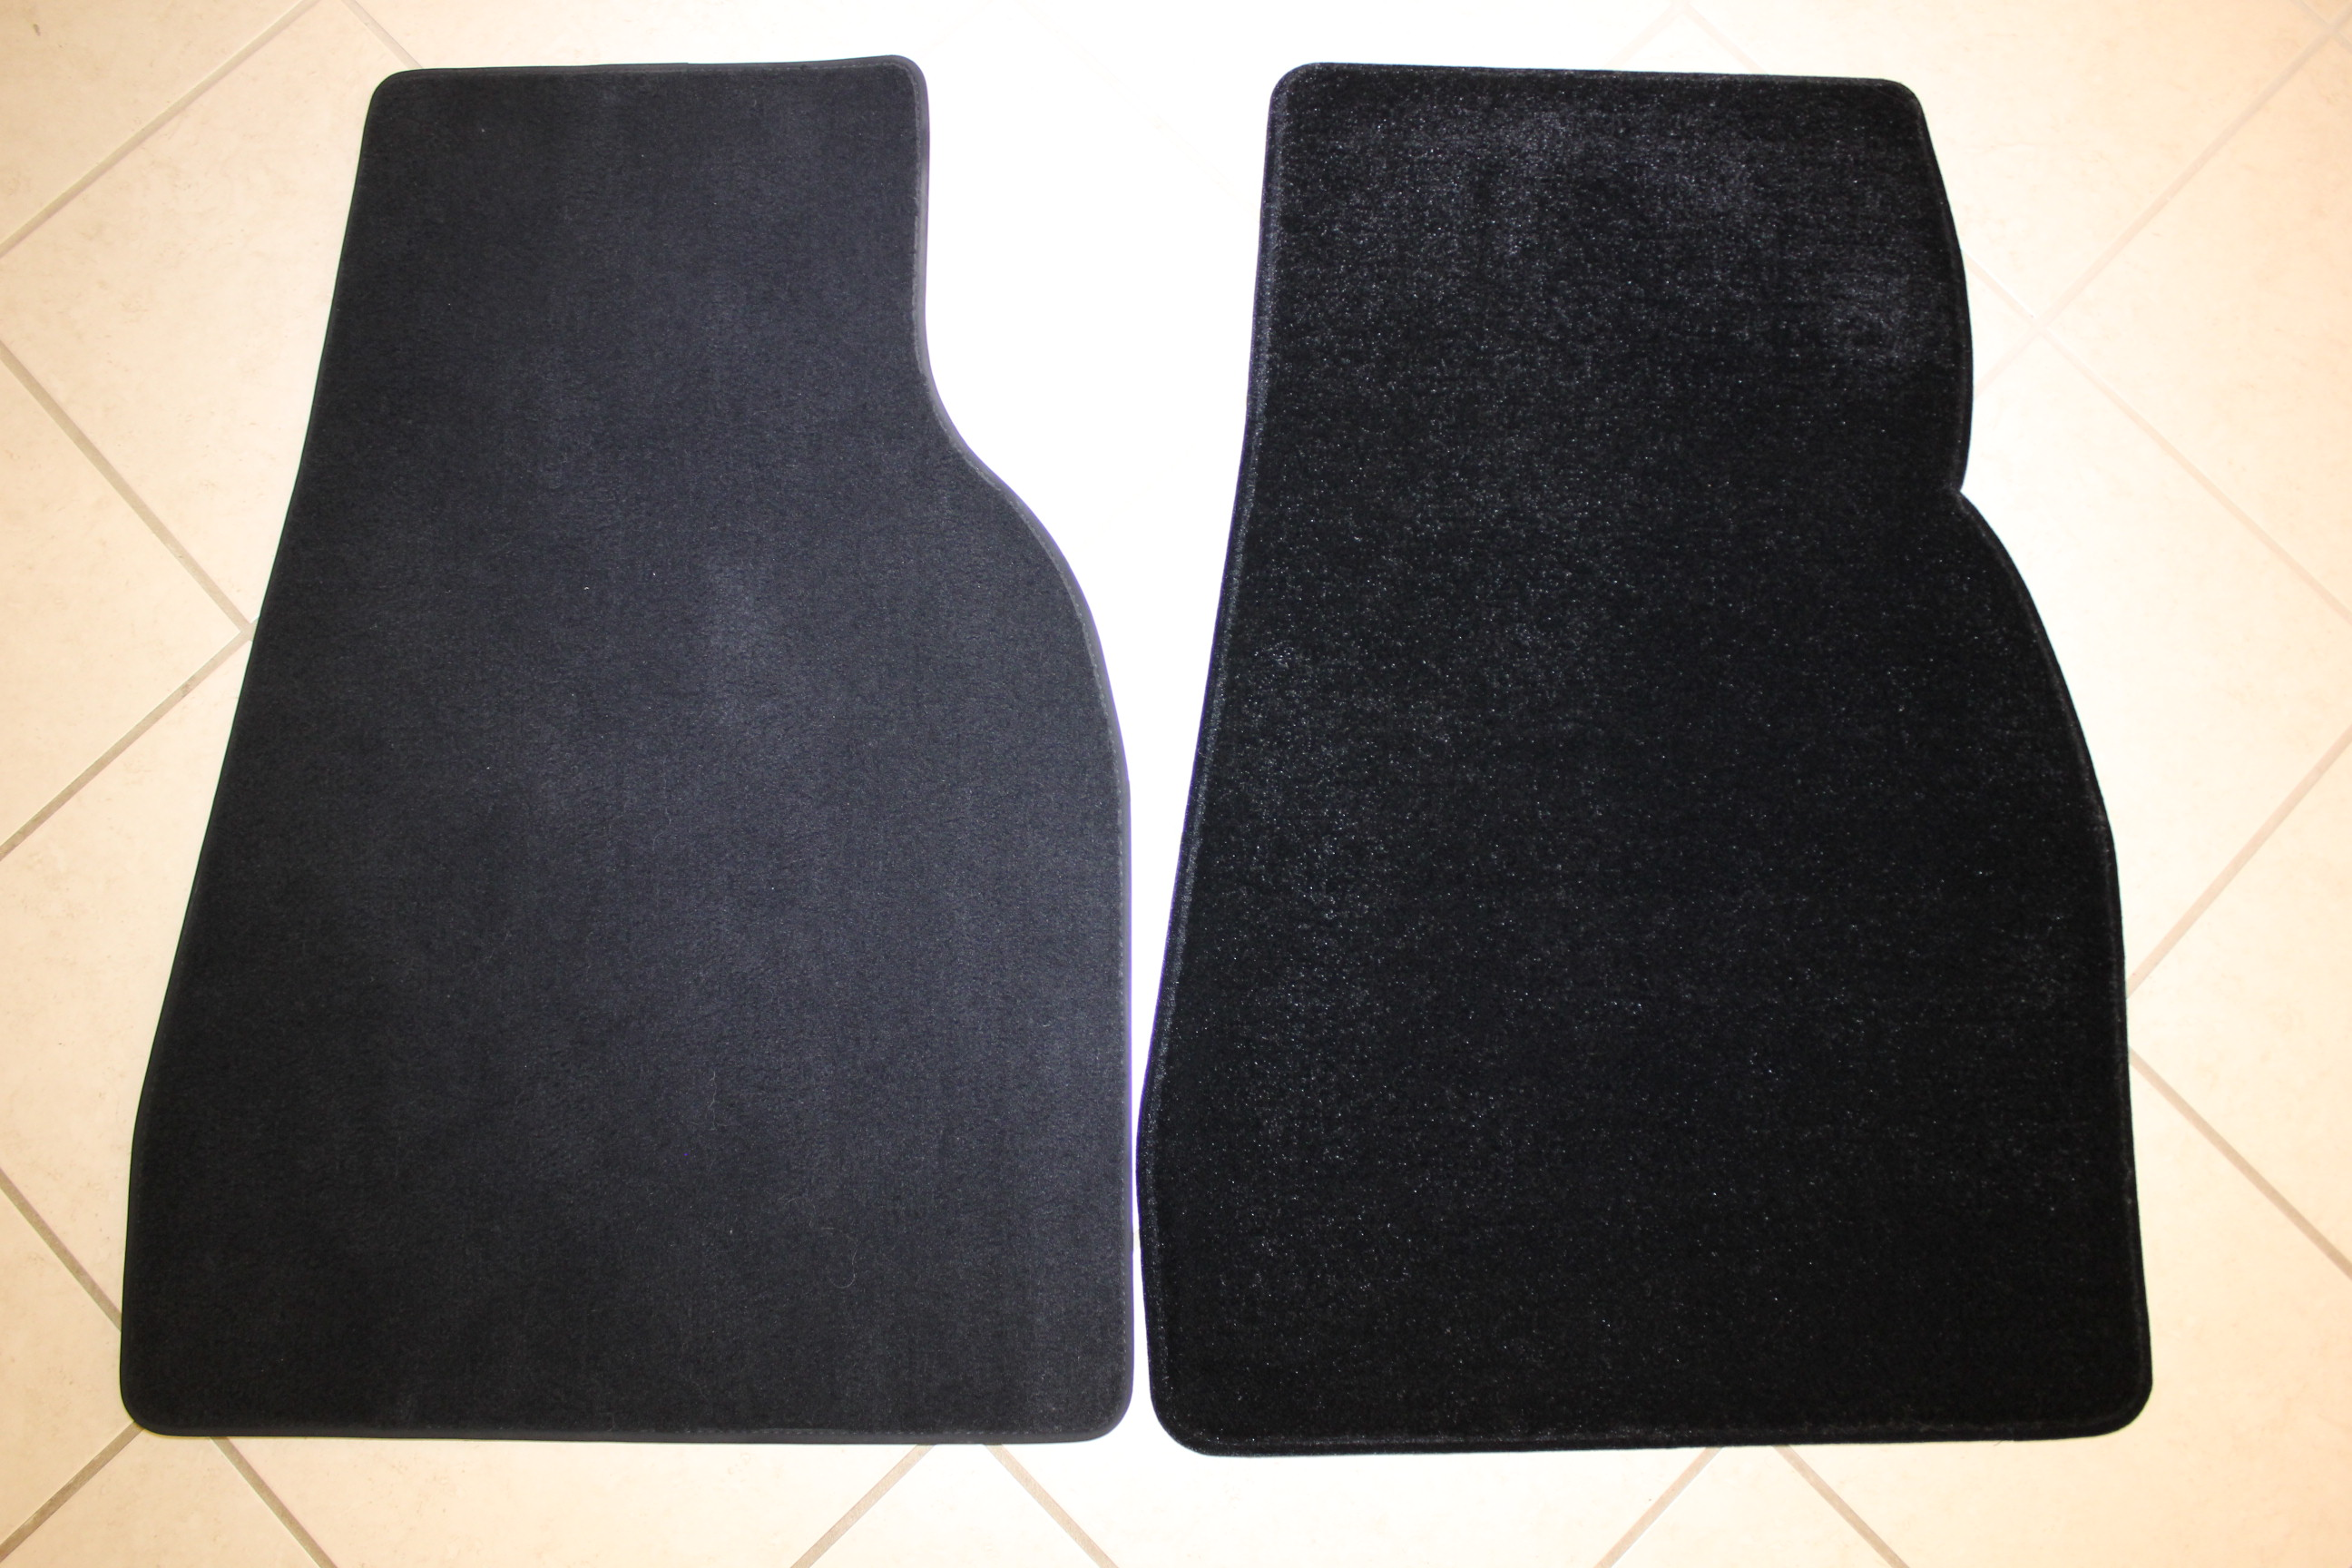 Left to Right – OEM Mats vs LUXE Mats Front passenger Comparison